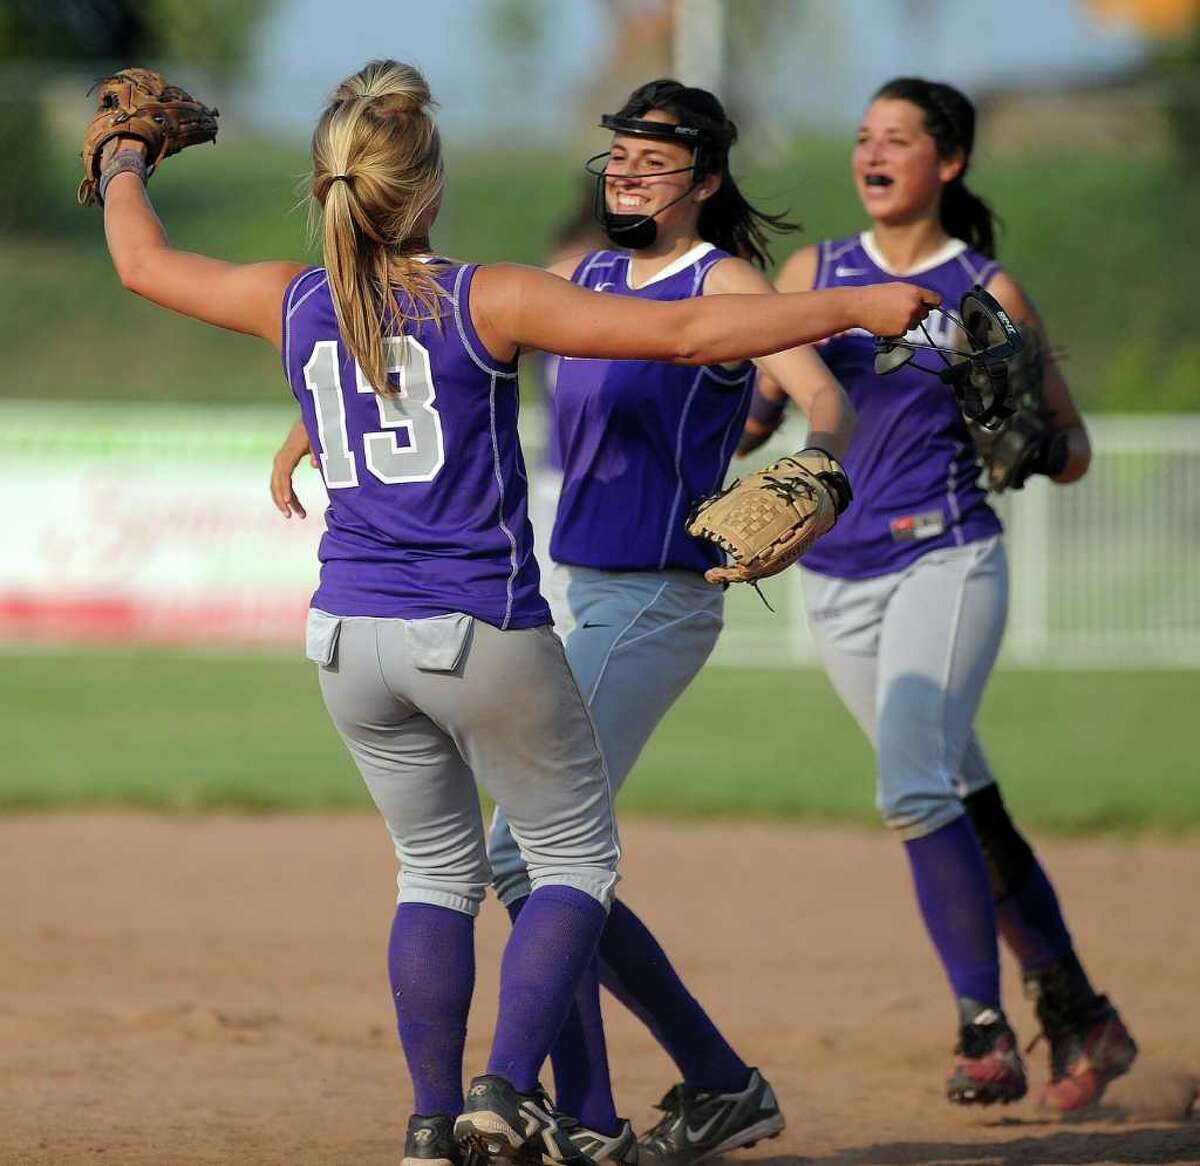 Westhill celebrates their win after Tuesday's class LL semifinal game against Bristol Central at DeLuca Field in Stratford on June 7, 2011.